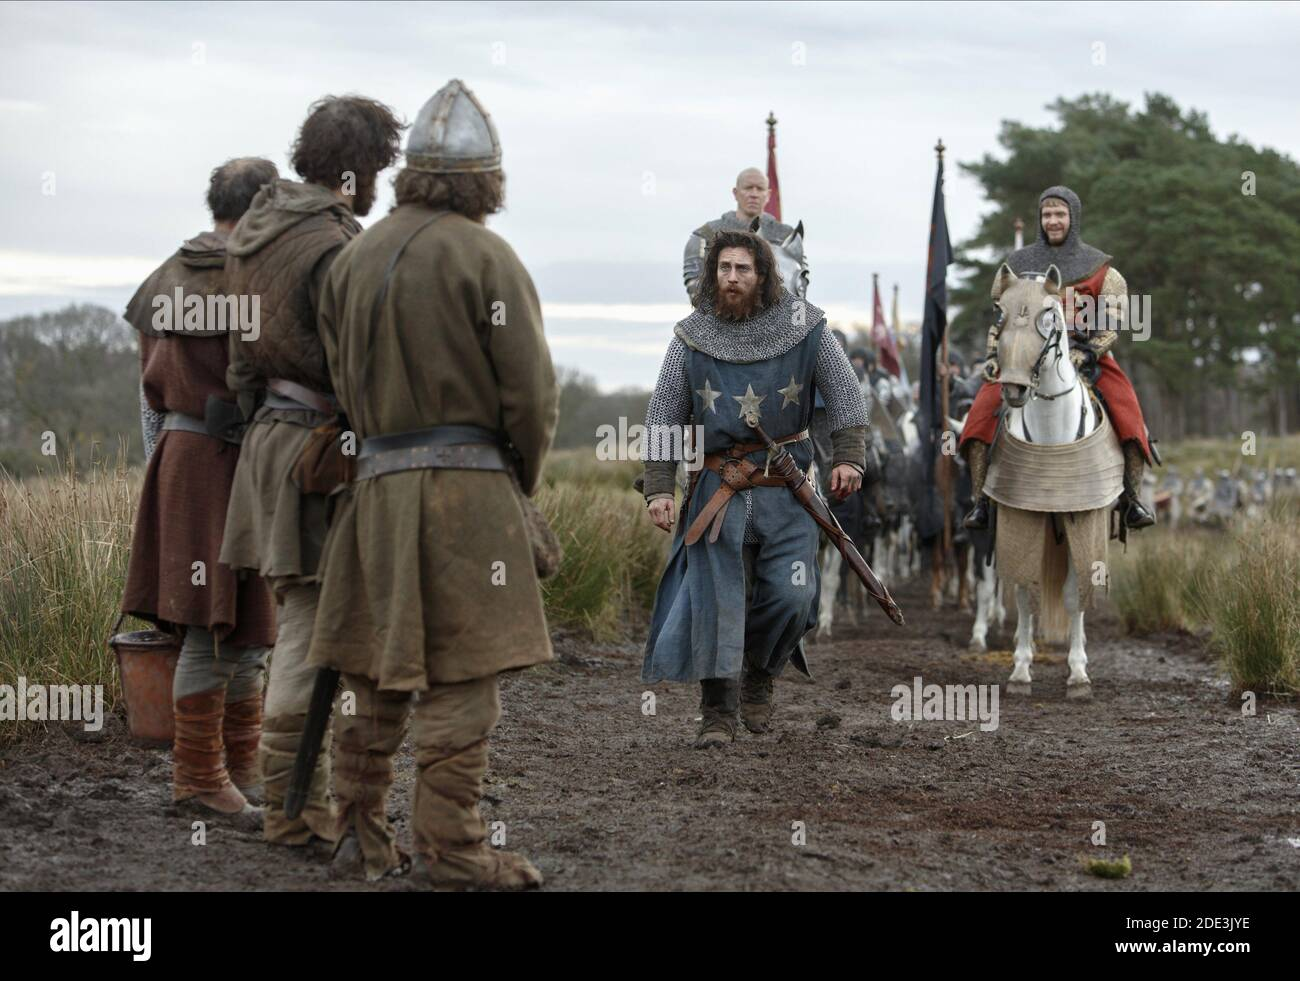 TAYLOR-JOHNSON,SPRUELL,HOWLE, OUTLAW KING, 2018 © NETFLIX Banque D'Images